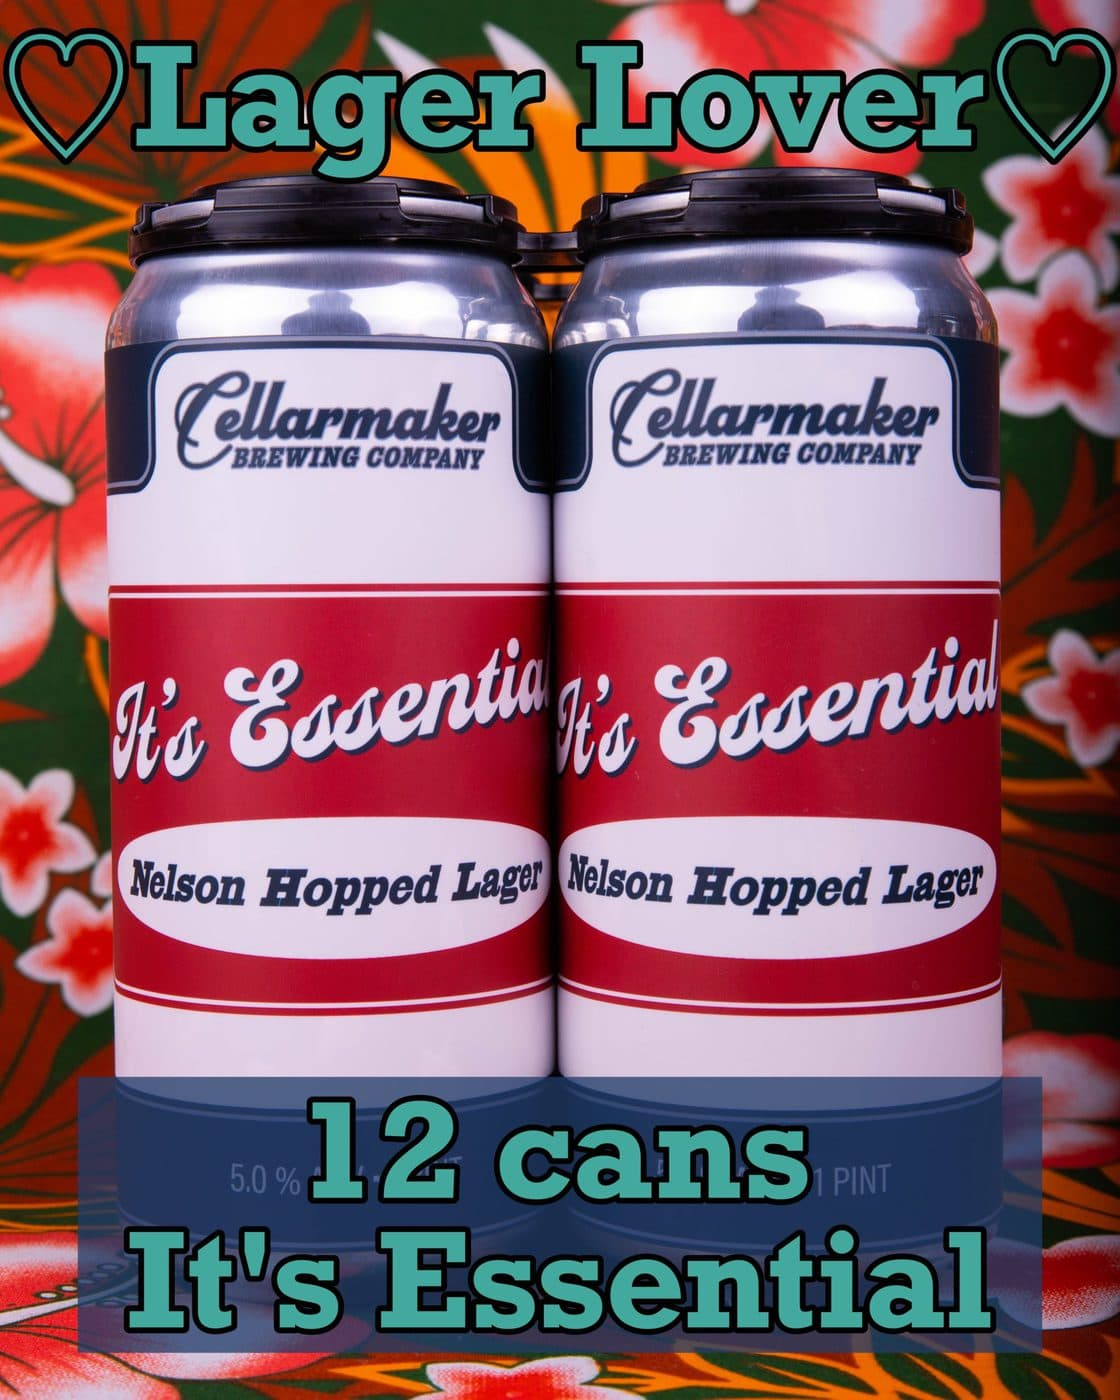 LAGER LOVER ~ 12 CANS It's Essential! … SHIPPING Out On TUESDAY 8/11 For NEXT DAY Delivery*